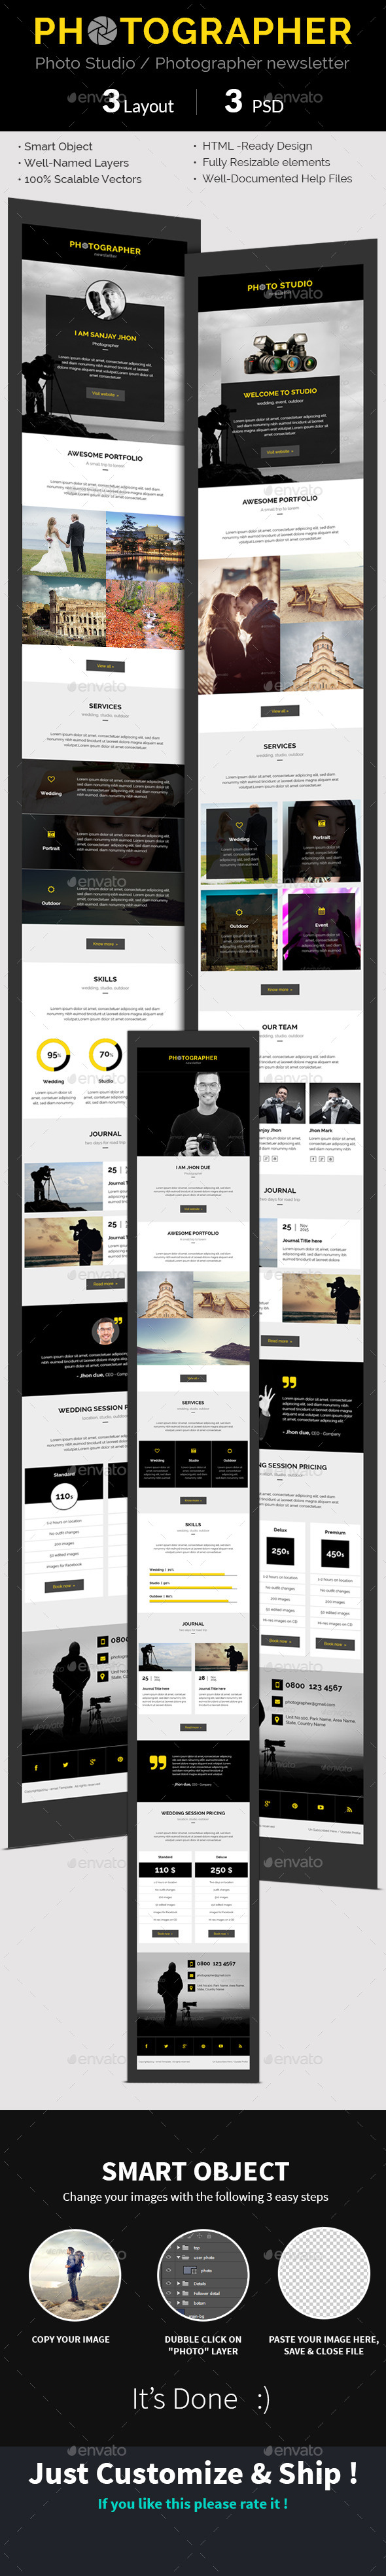 Photographer / Photo Studio e-newsletter PSD Templ - E-newsletters Web Elements